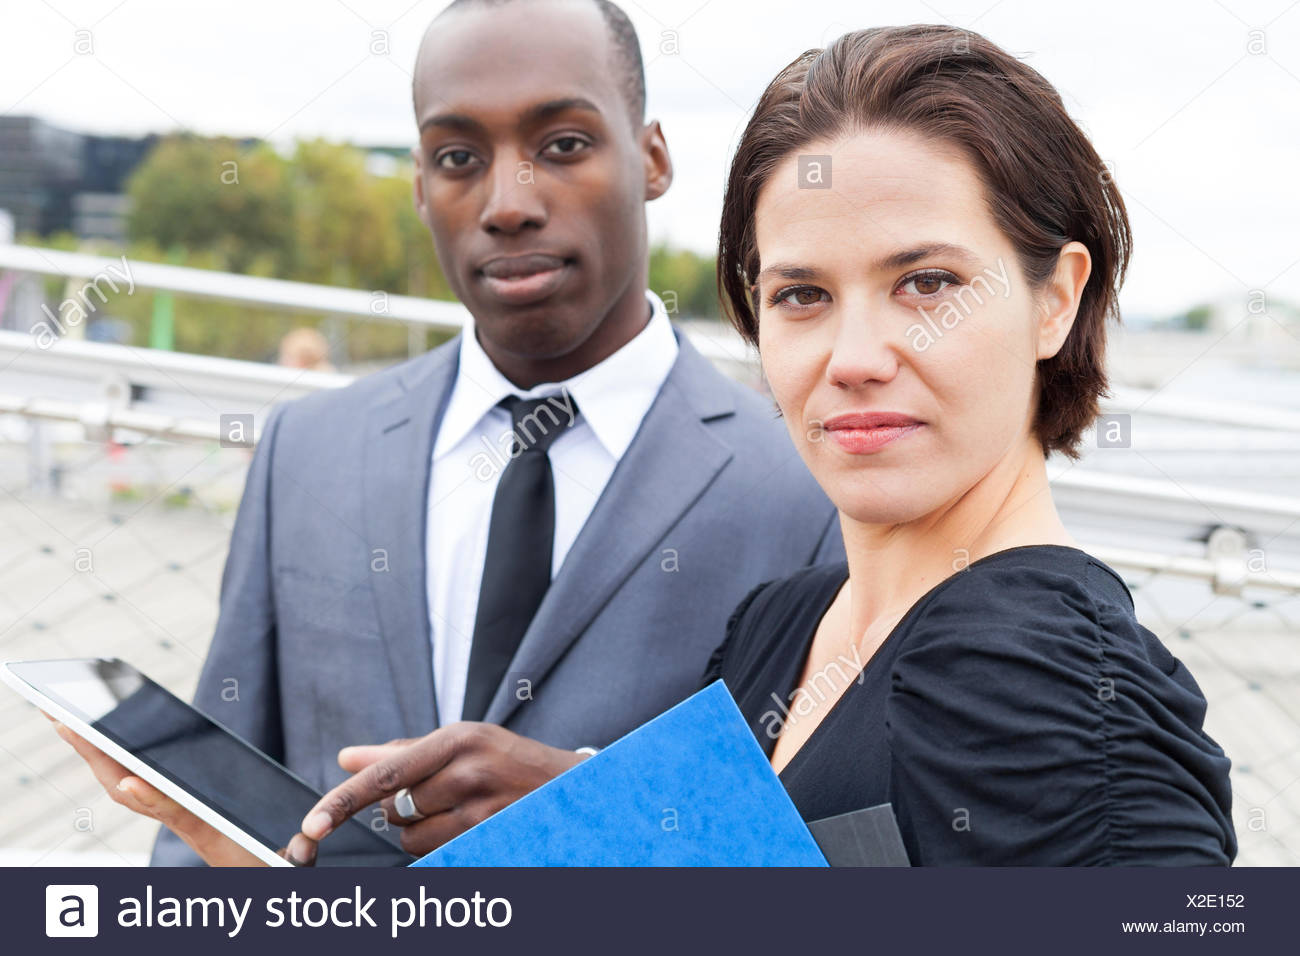 Portrait of business people with the man presenting something on electronic tablet Stock Photo